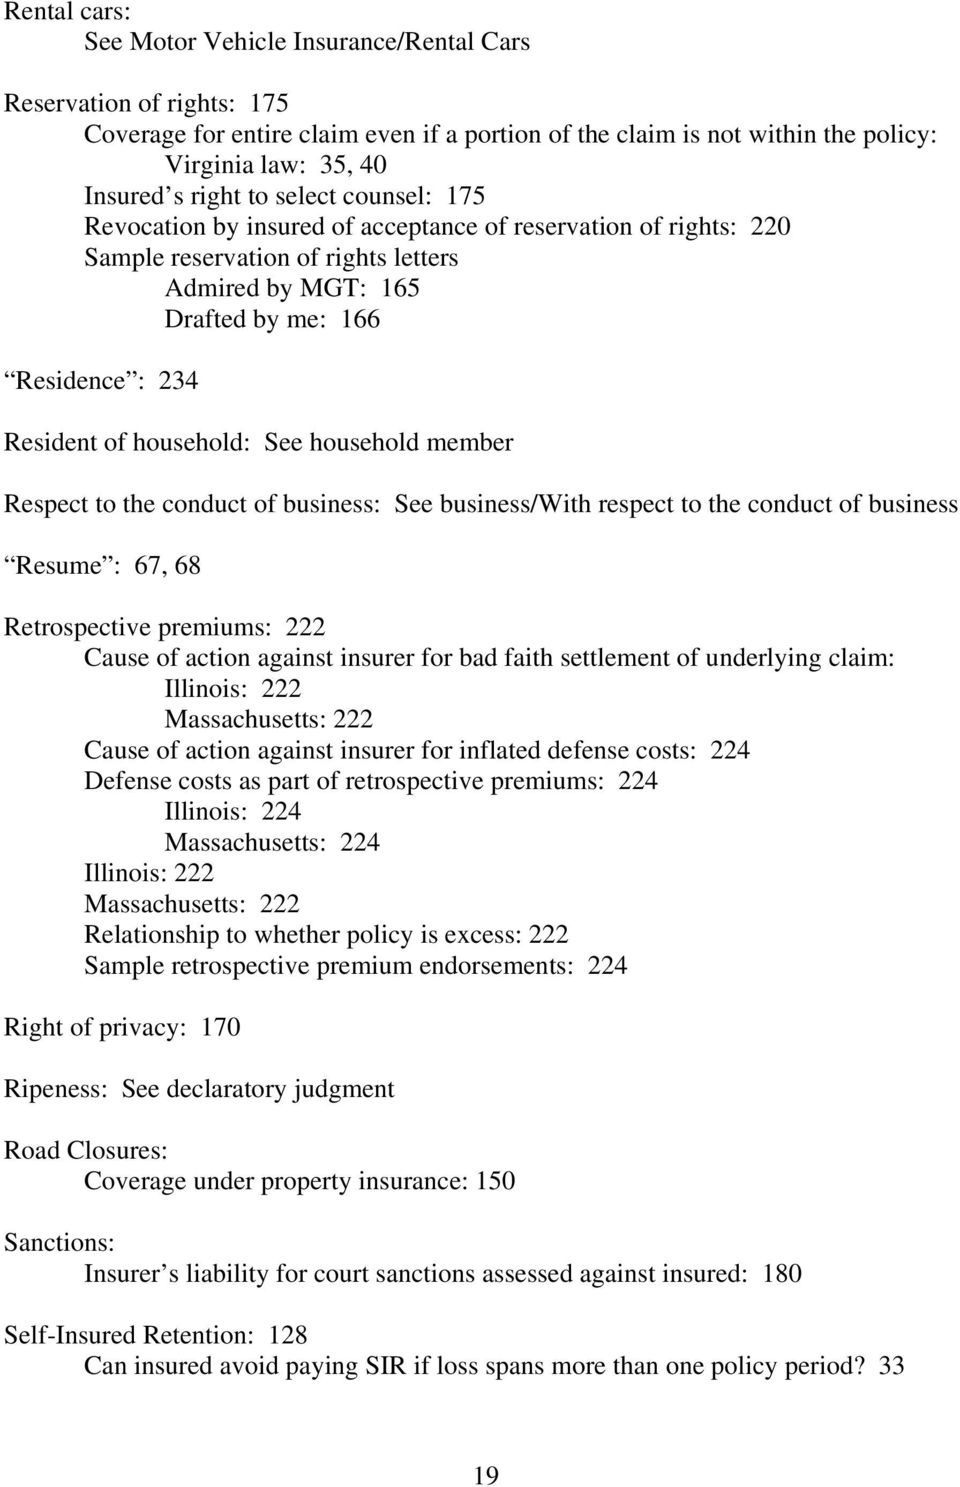 household: See household member Respect to the conduct of business: See business/with respect to the conduct of business Resume : 67, 68 Retrospective premiums: 222 Cause of action against insurer